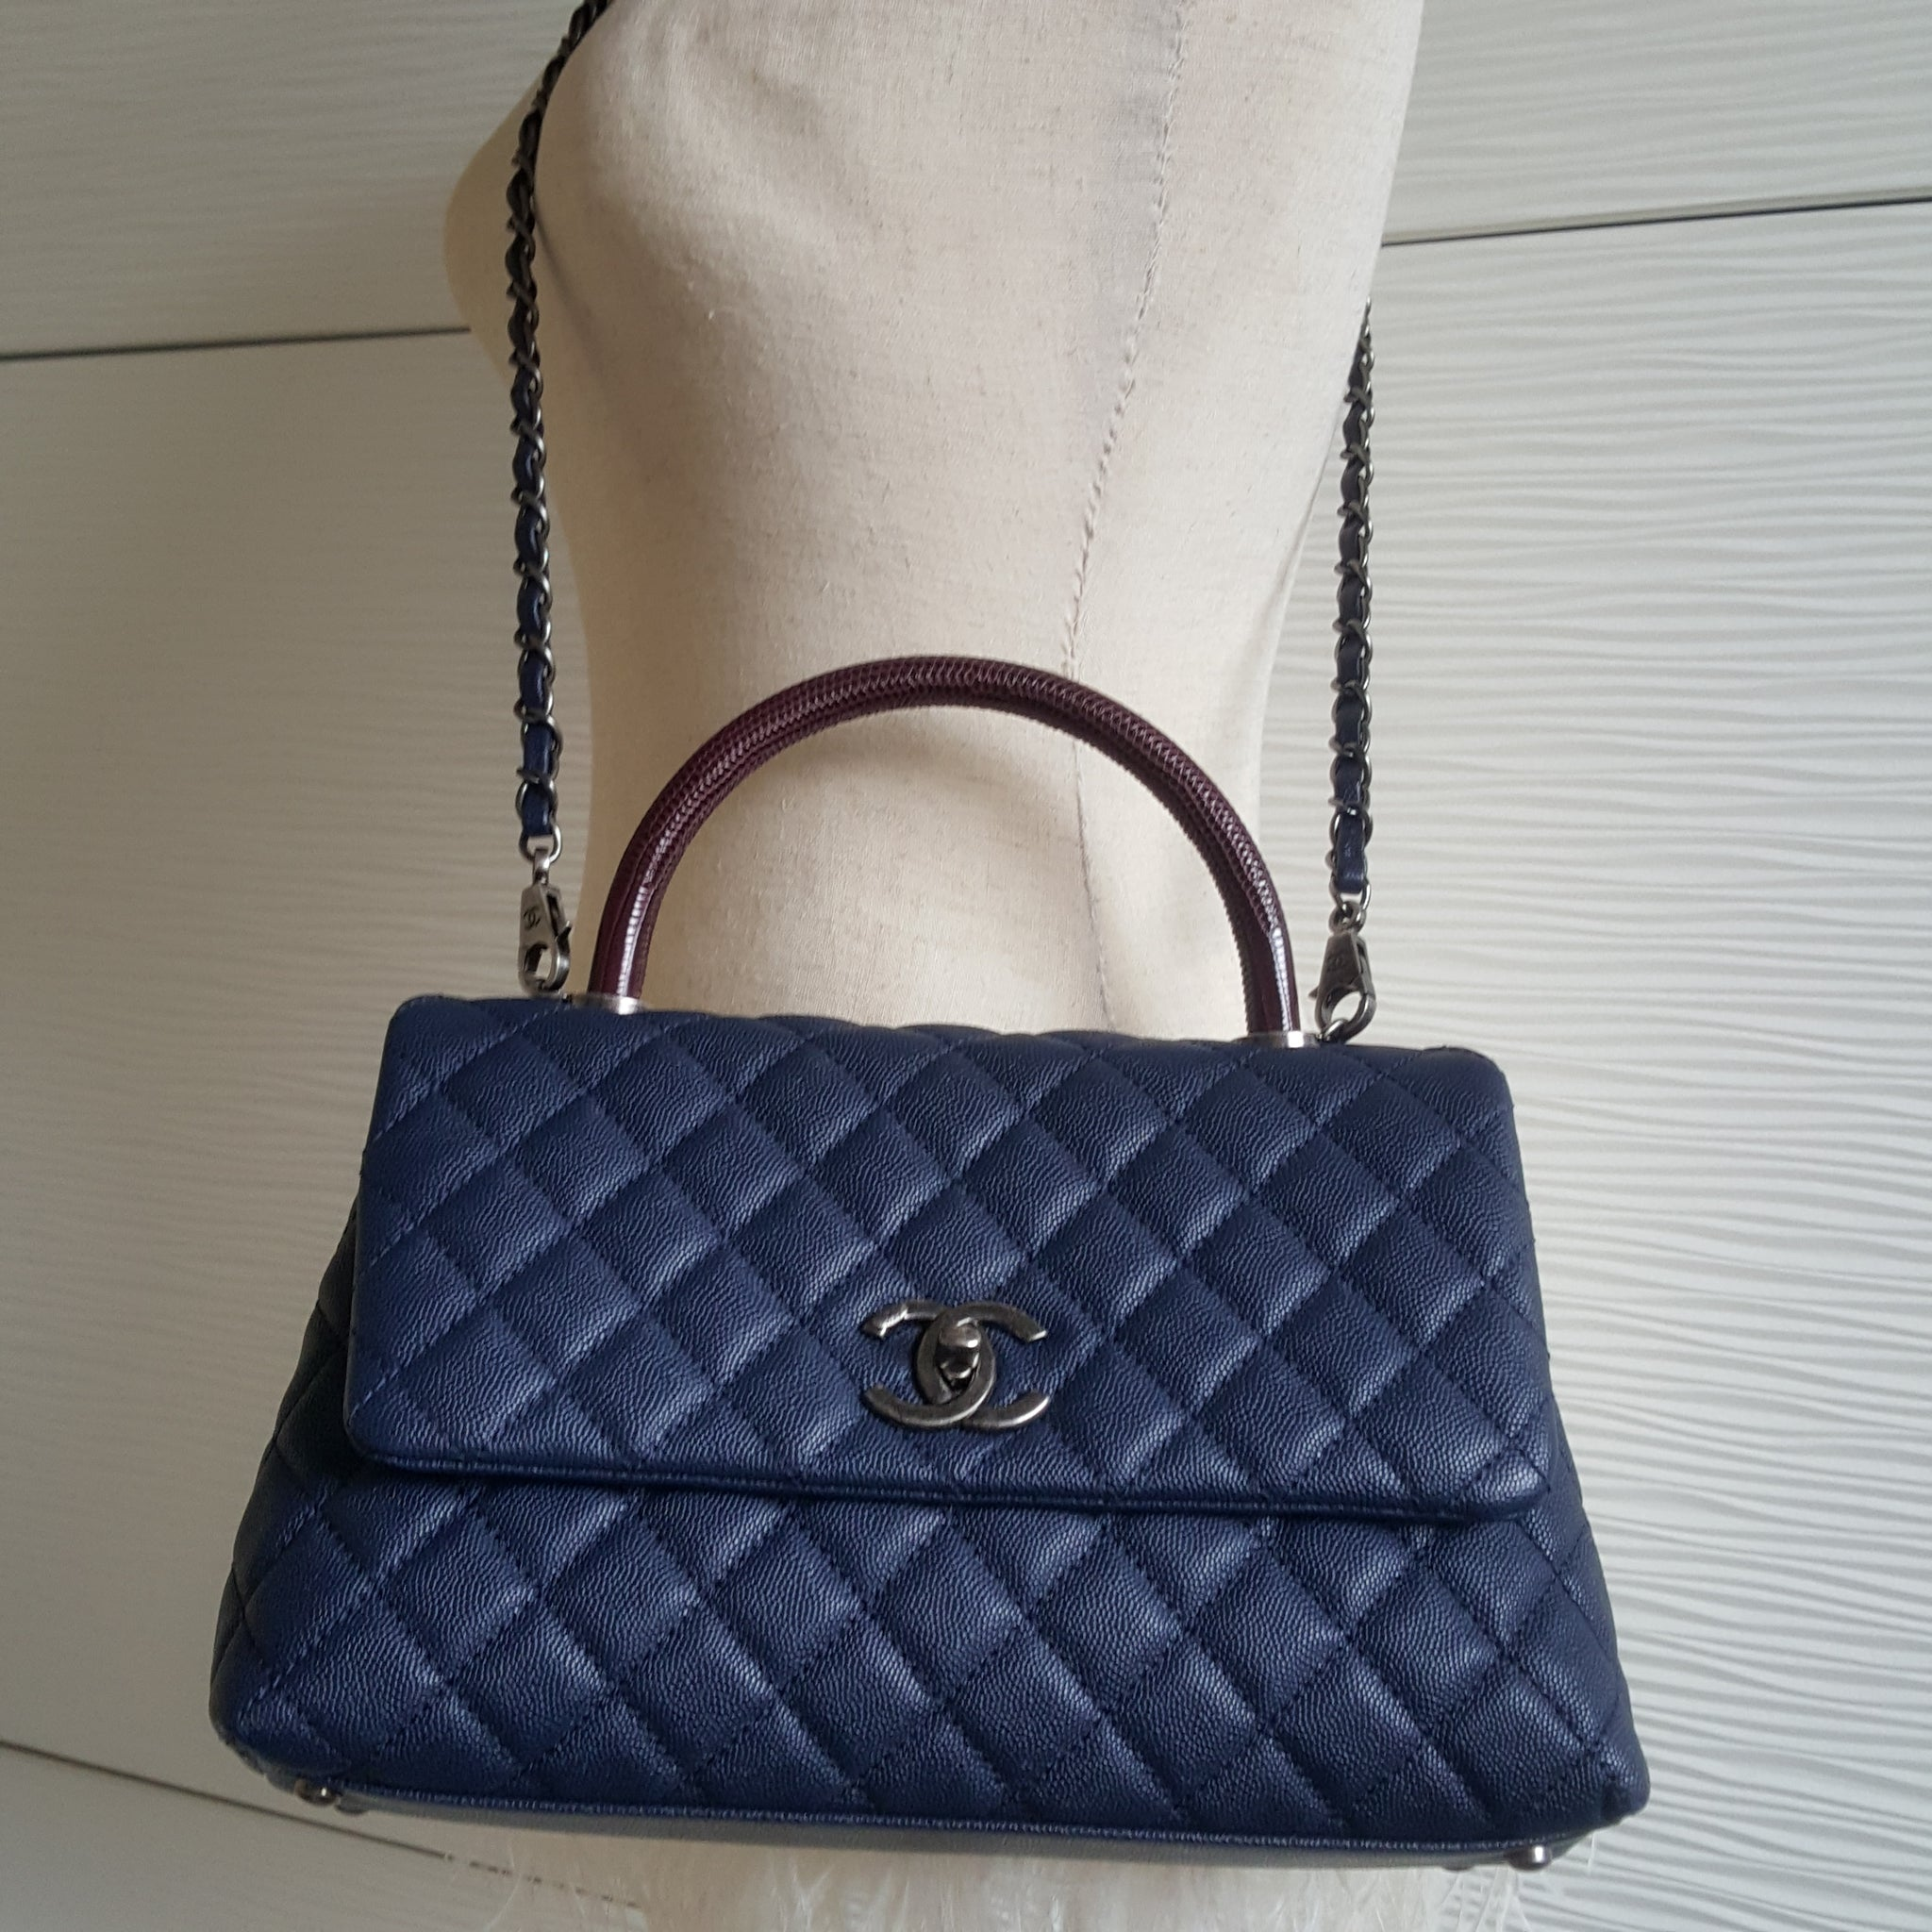 CHANEL NAVY BLUE CAVIAR MEDIUM FLAP BAG WITH TOP HANDLE (LIZARD)